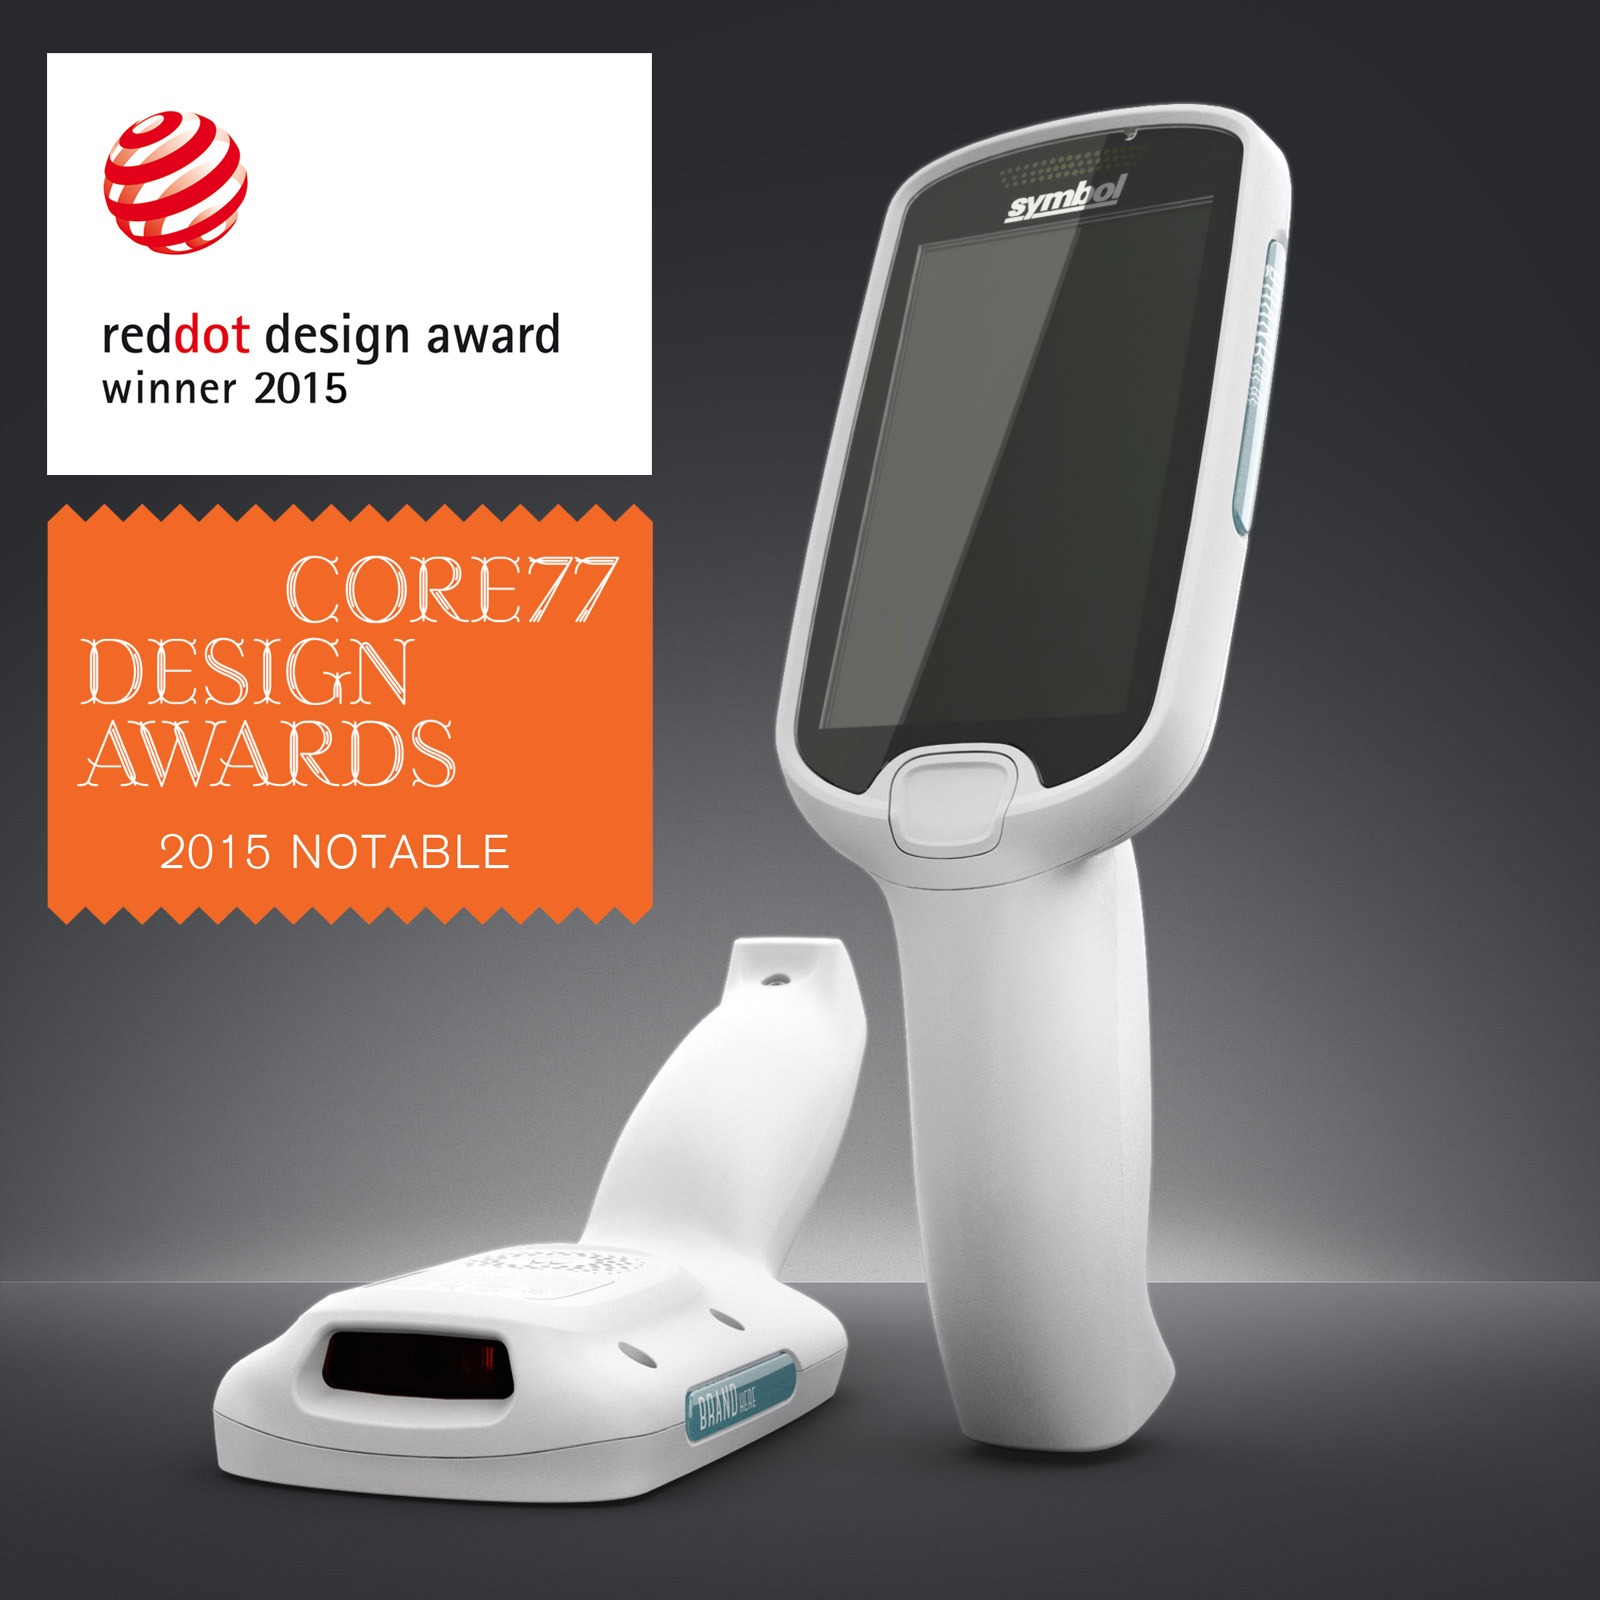 Two MC18s against a grey background with the Red Dot and Core77 award logos